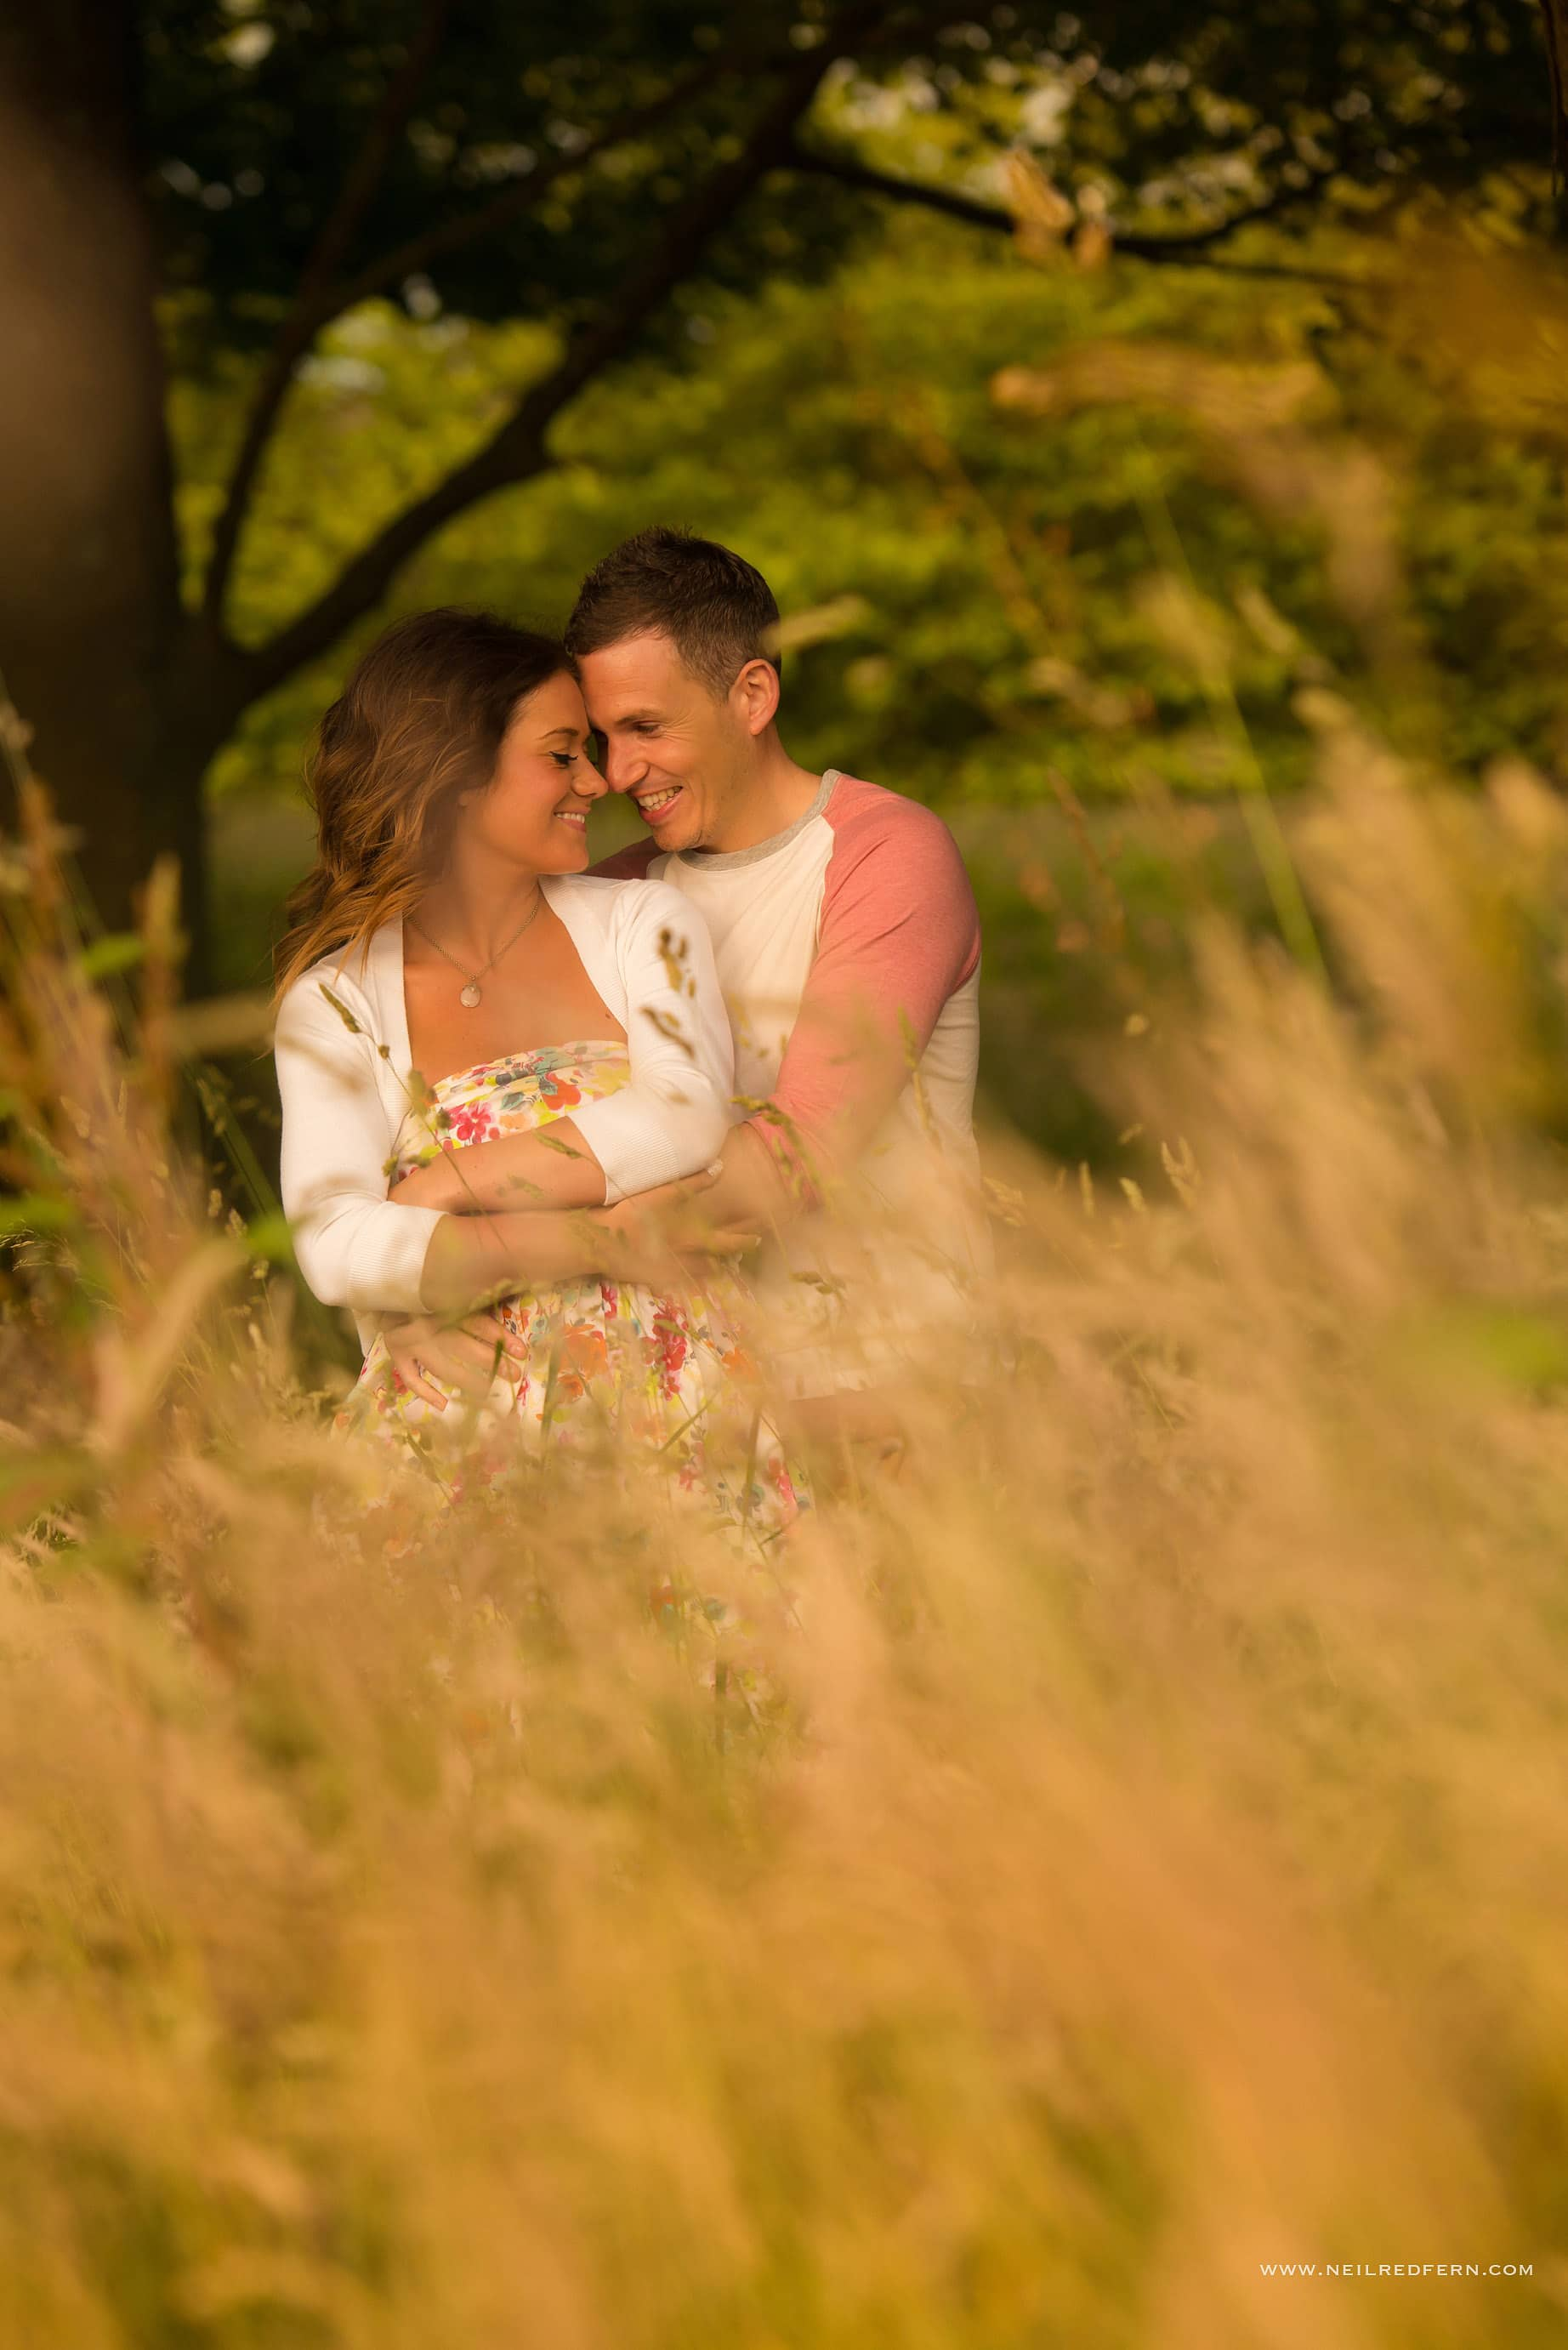 Rivington Hall Barn Engagement shoot 02